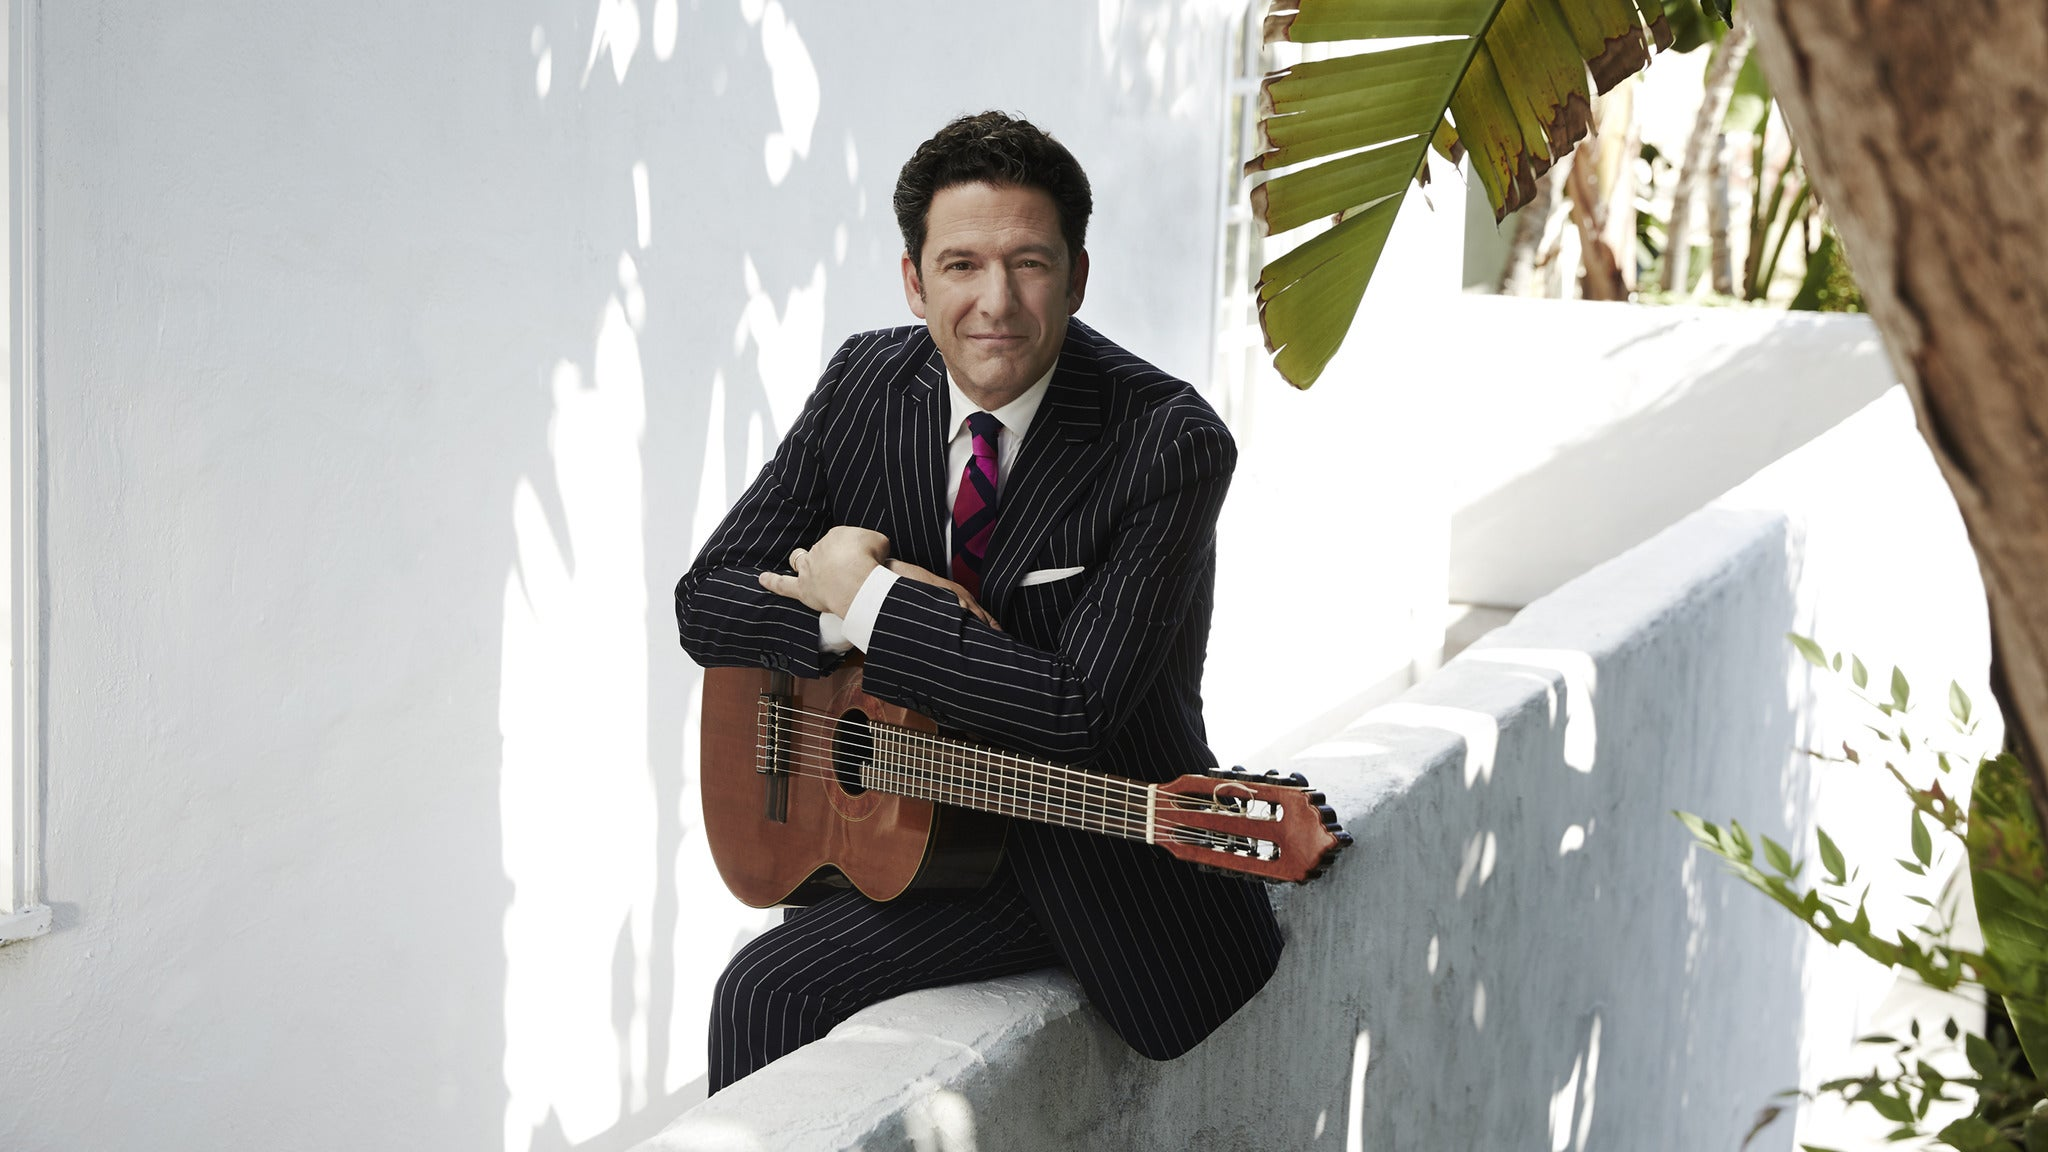 John Pizzarelli at Catalina Bar & Grill